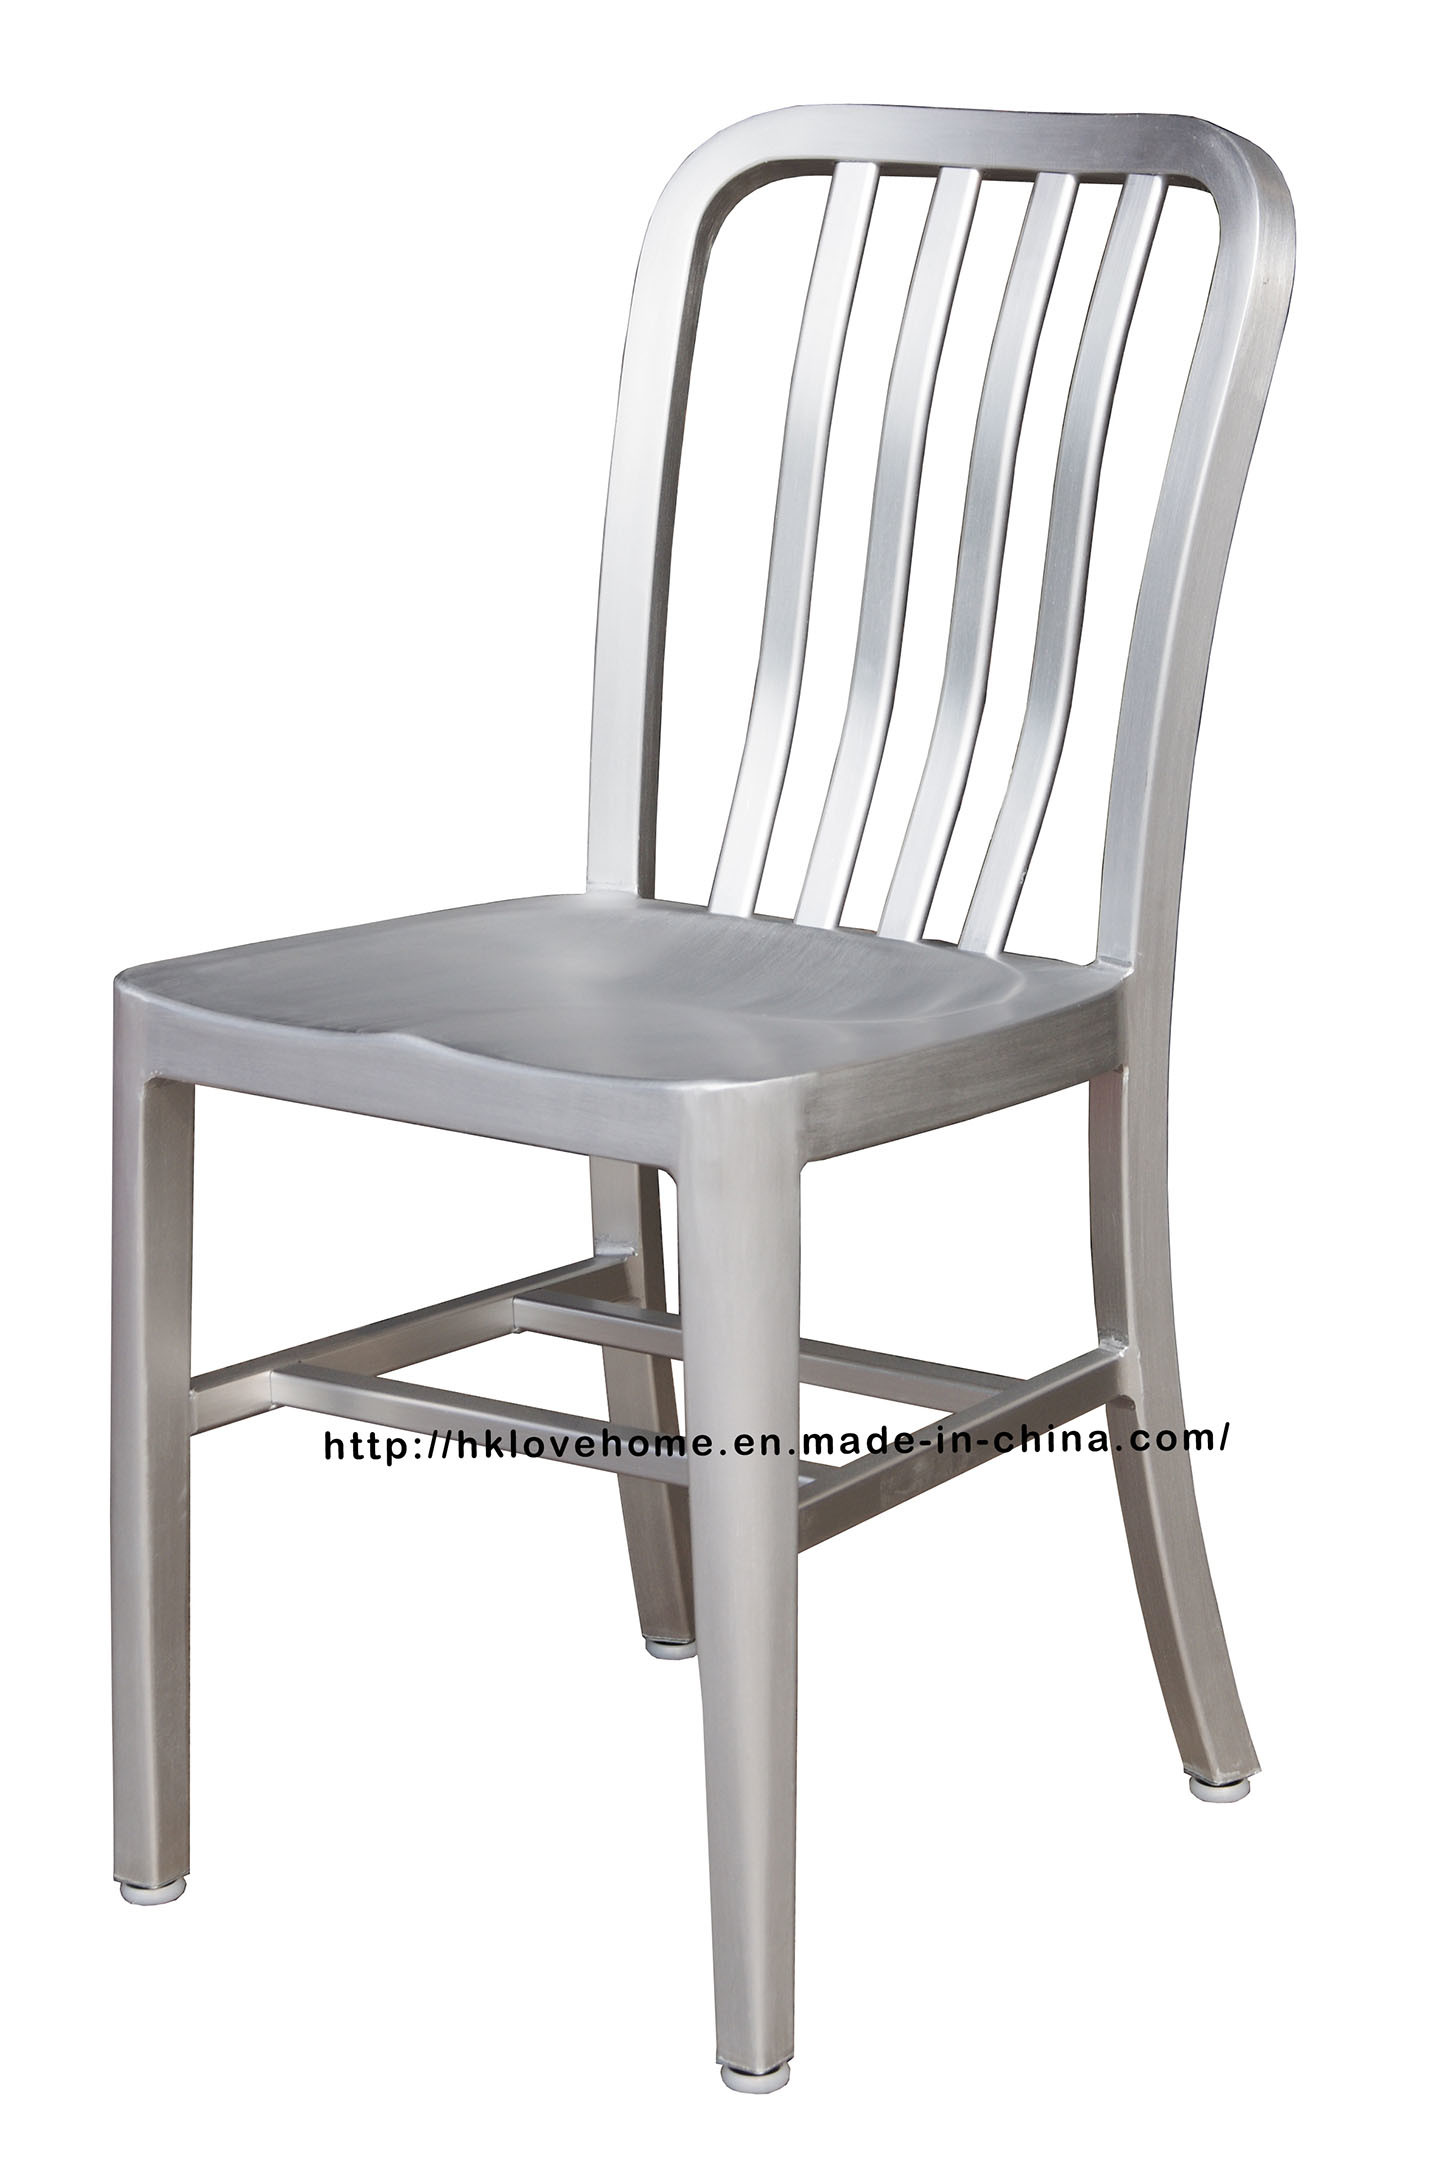 Aluminum Navy Chair Chair Design Ideas